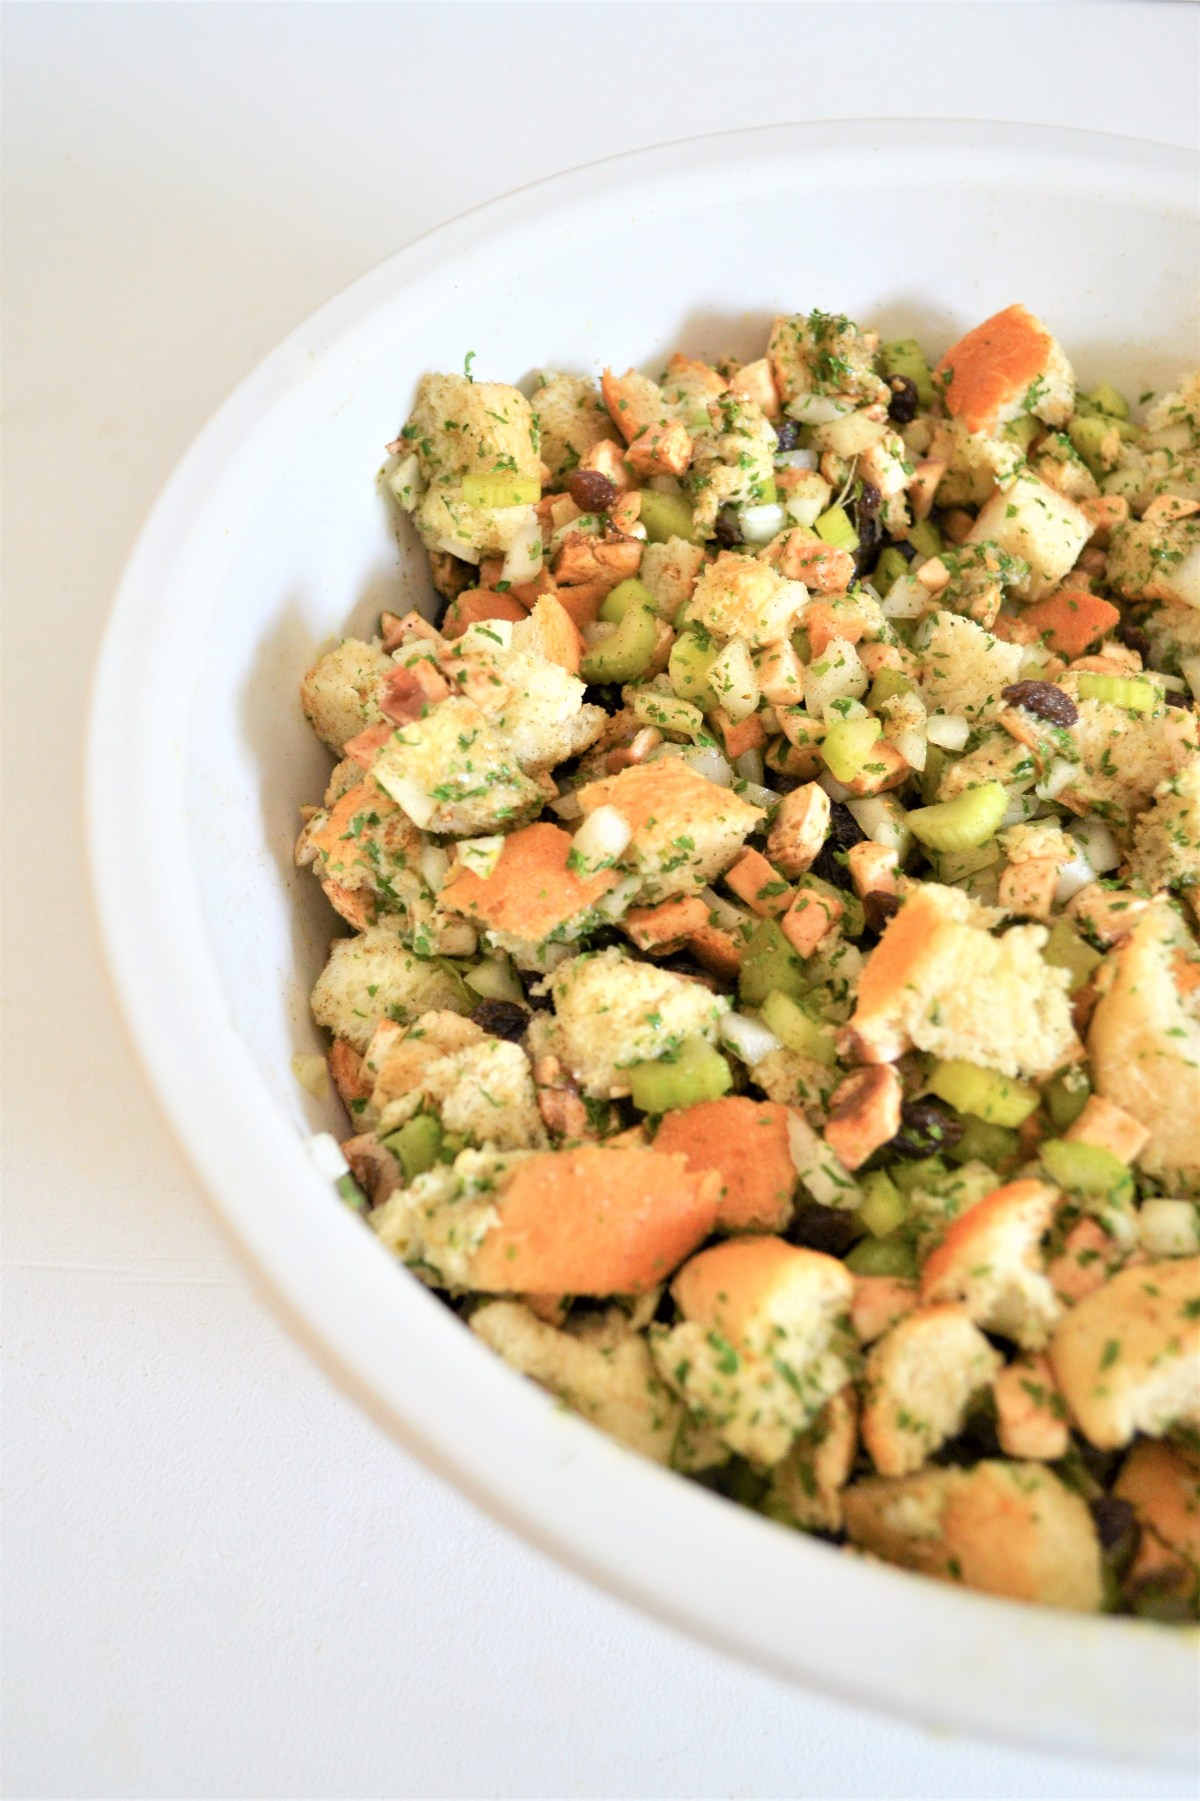 Turkey Stuffing Recipe - ready to cook